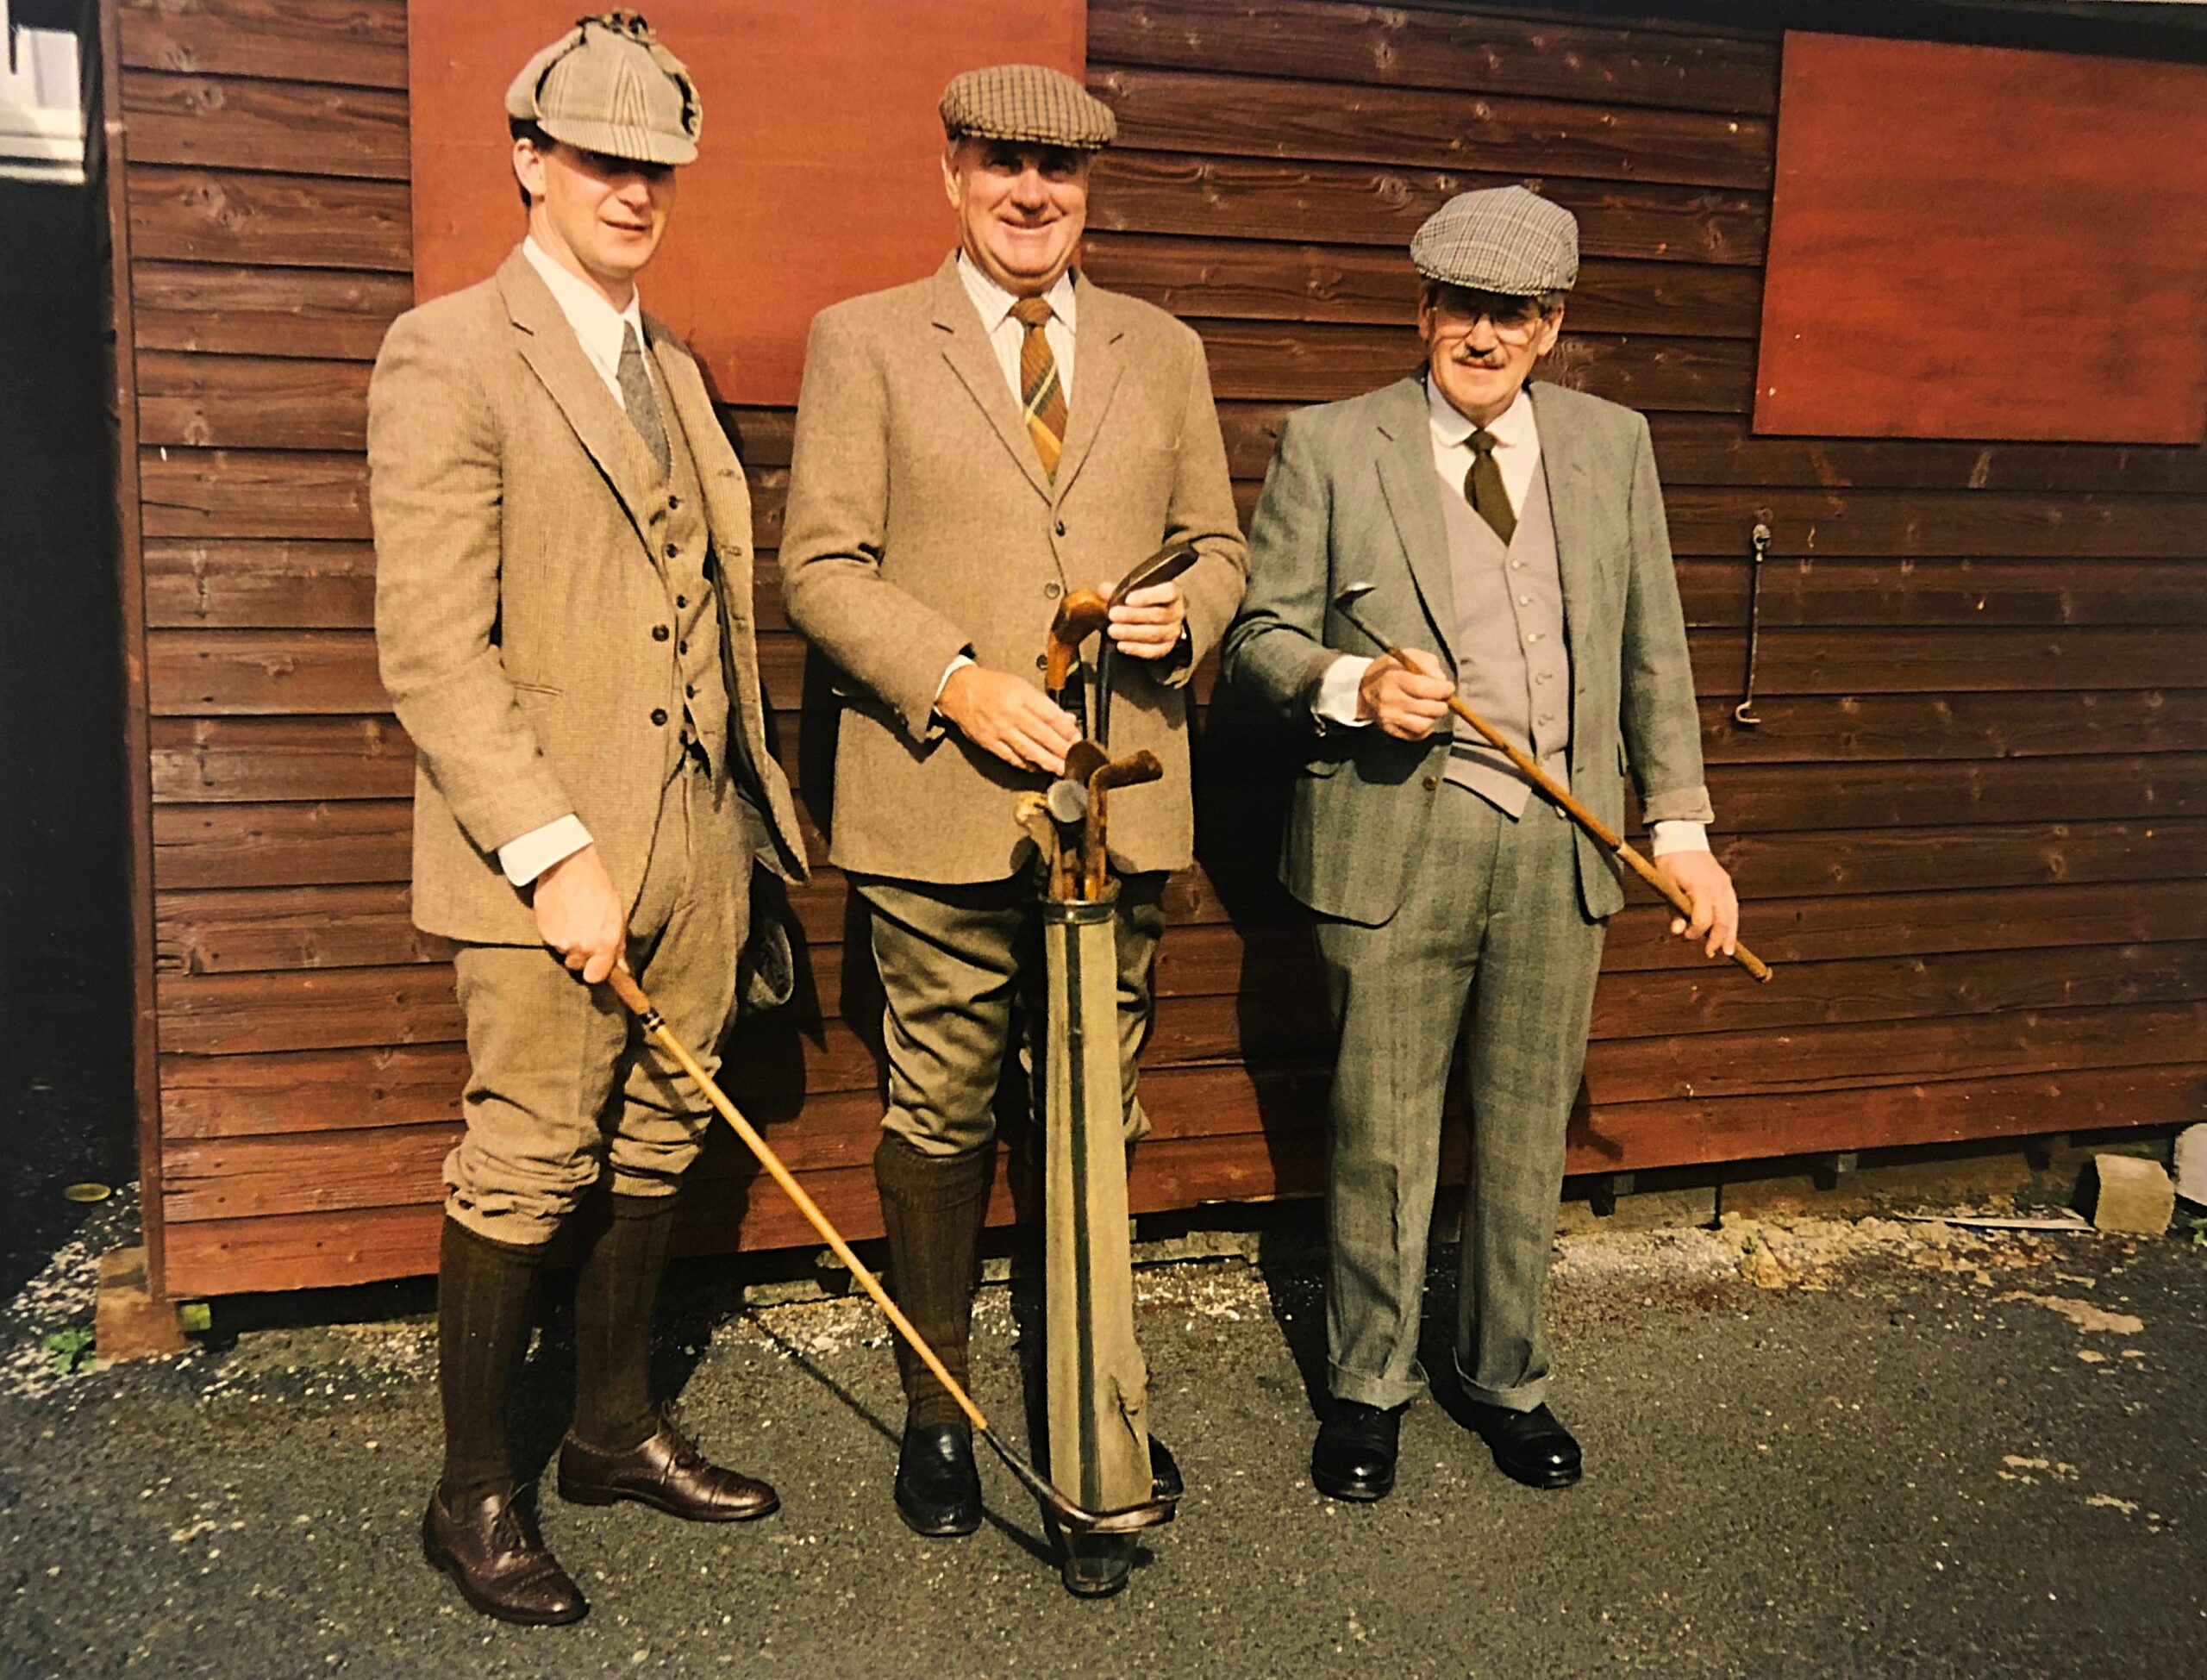 Left to right: Shaun Davies, Peter Mills and John Davies at a historical golf event, Turnbery G.C.